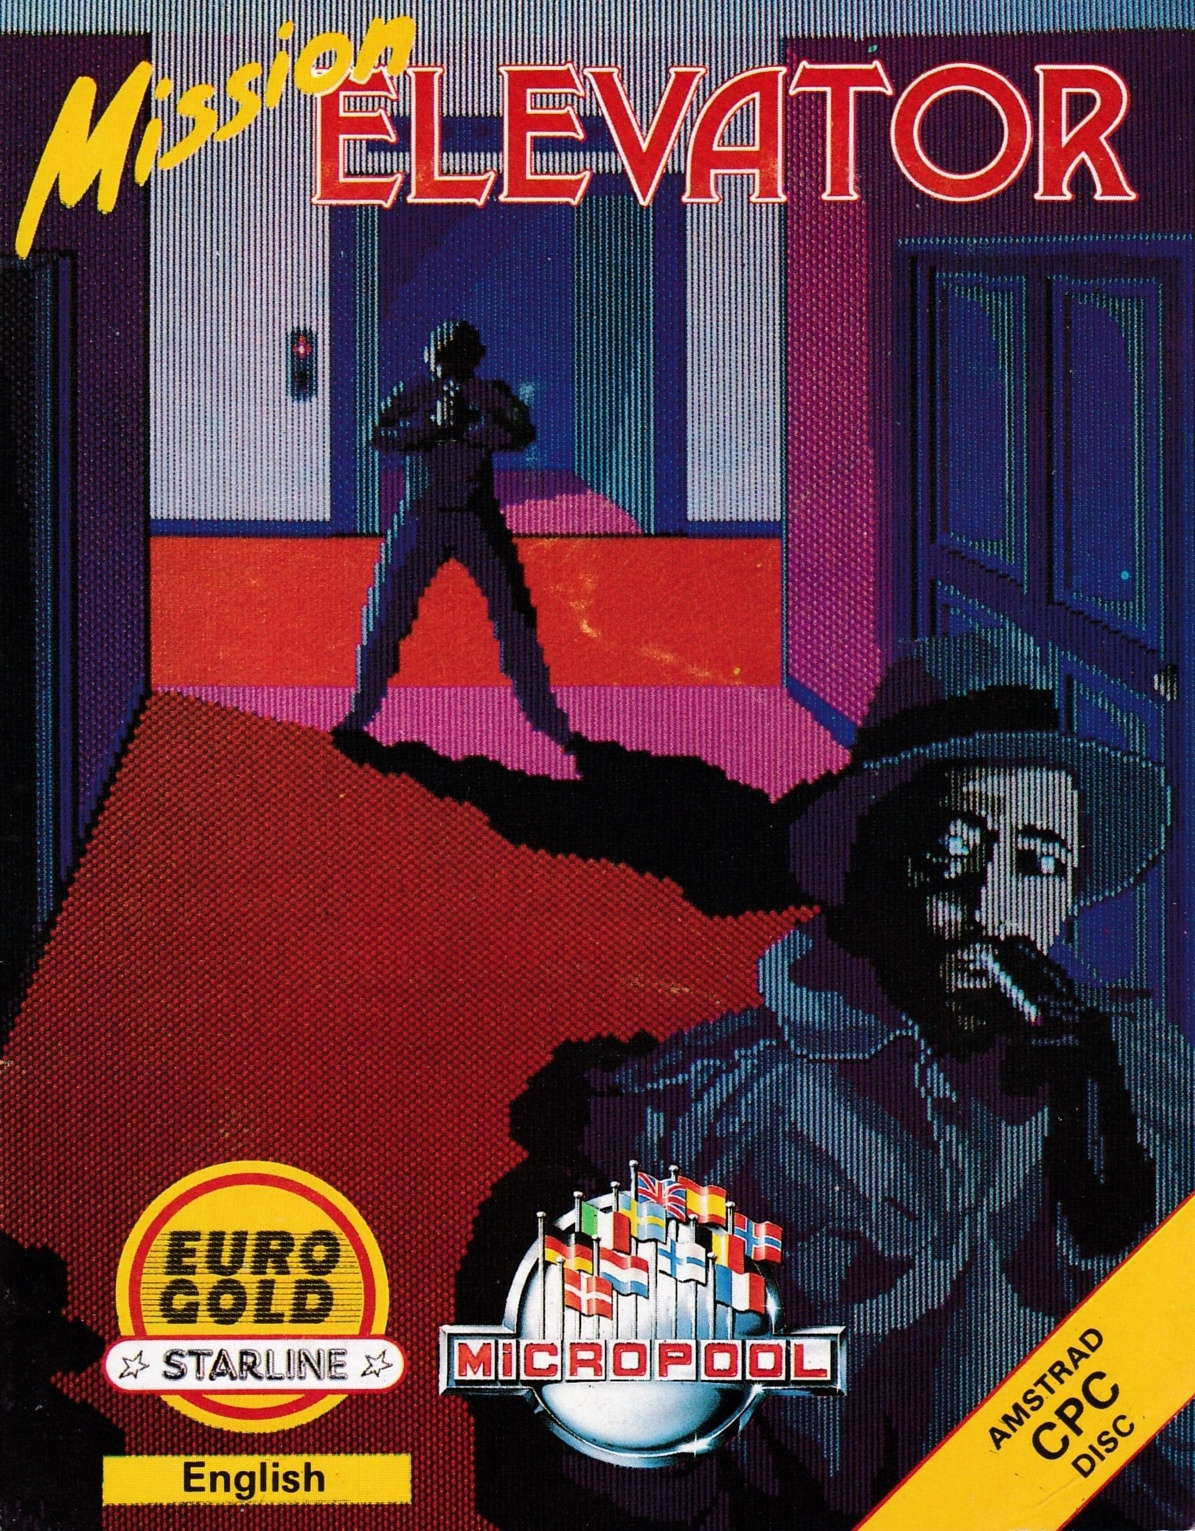 screenshot of the Amstrad CPC game Mission Elevator by GameBase CPC